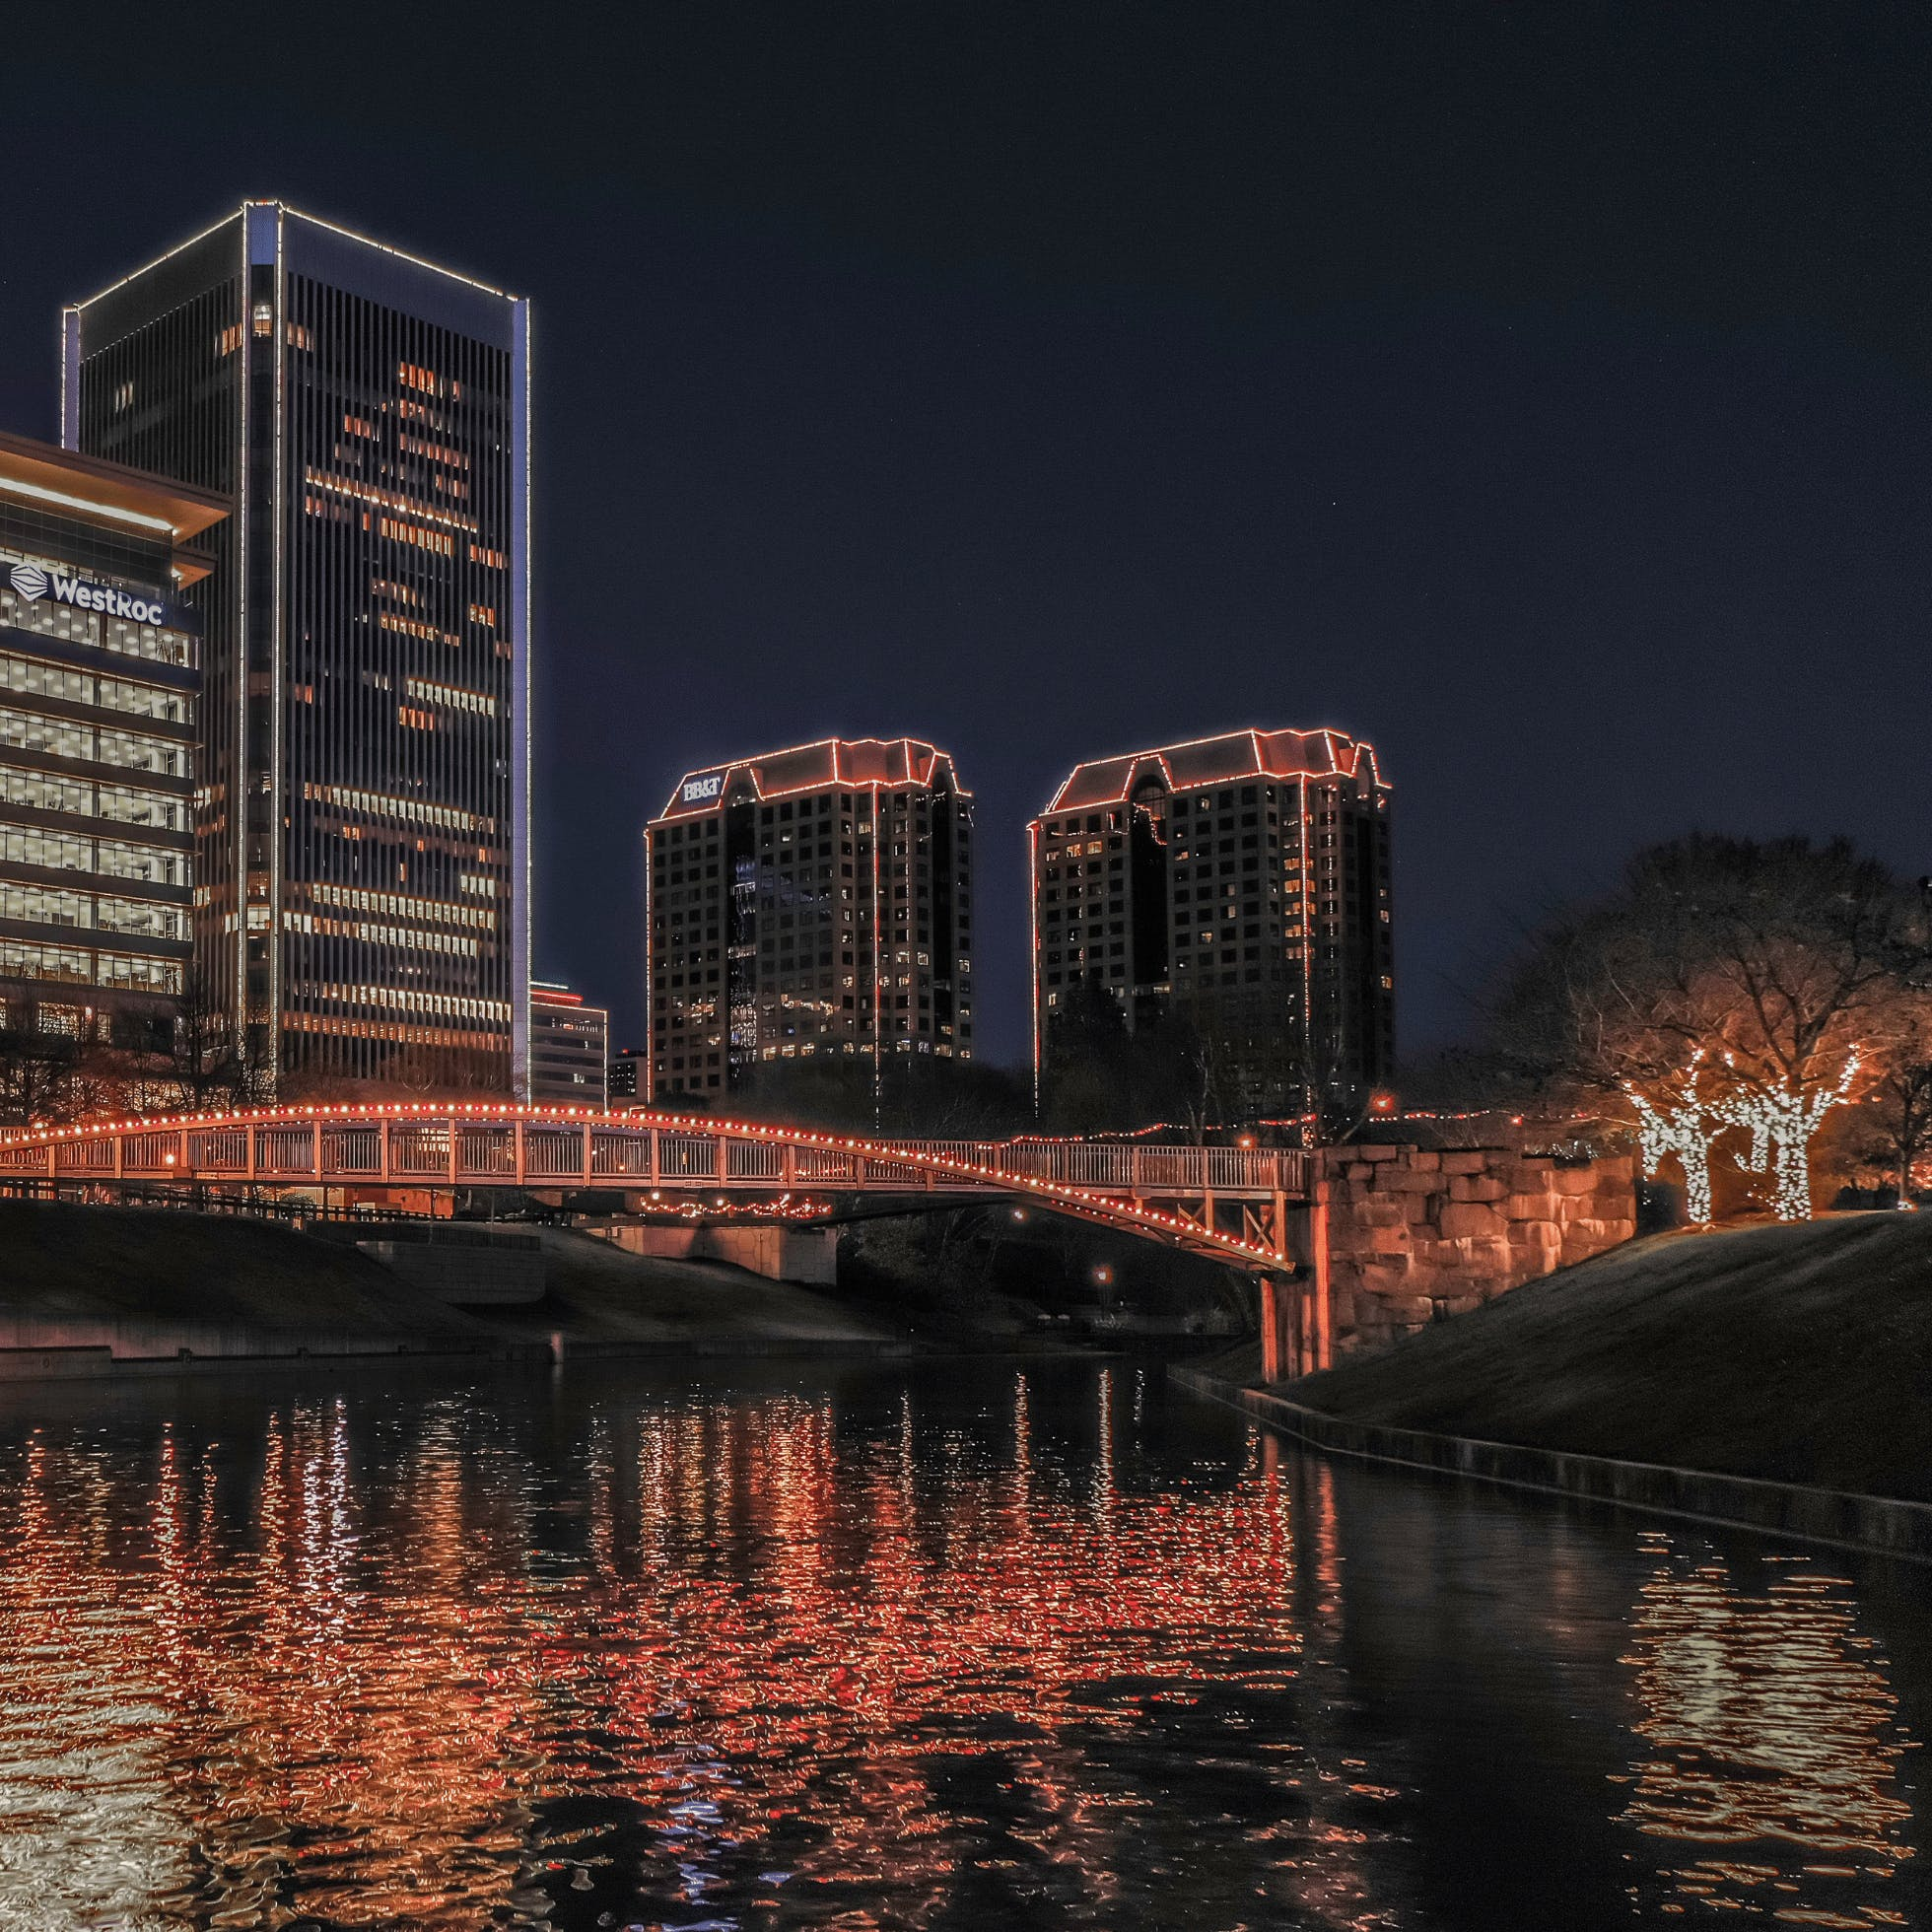 Holiday Lights on the Riverfront